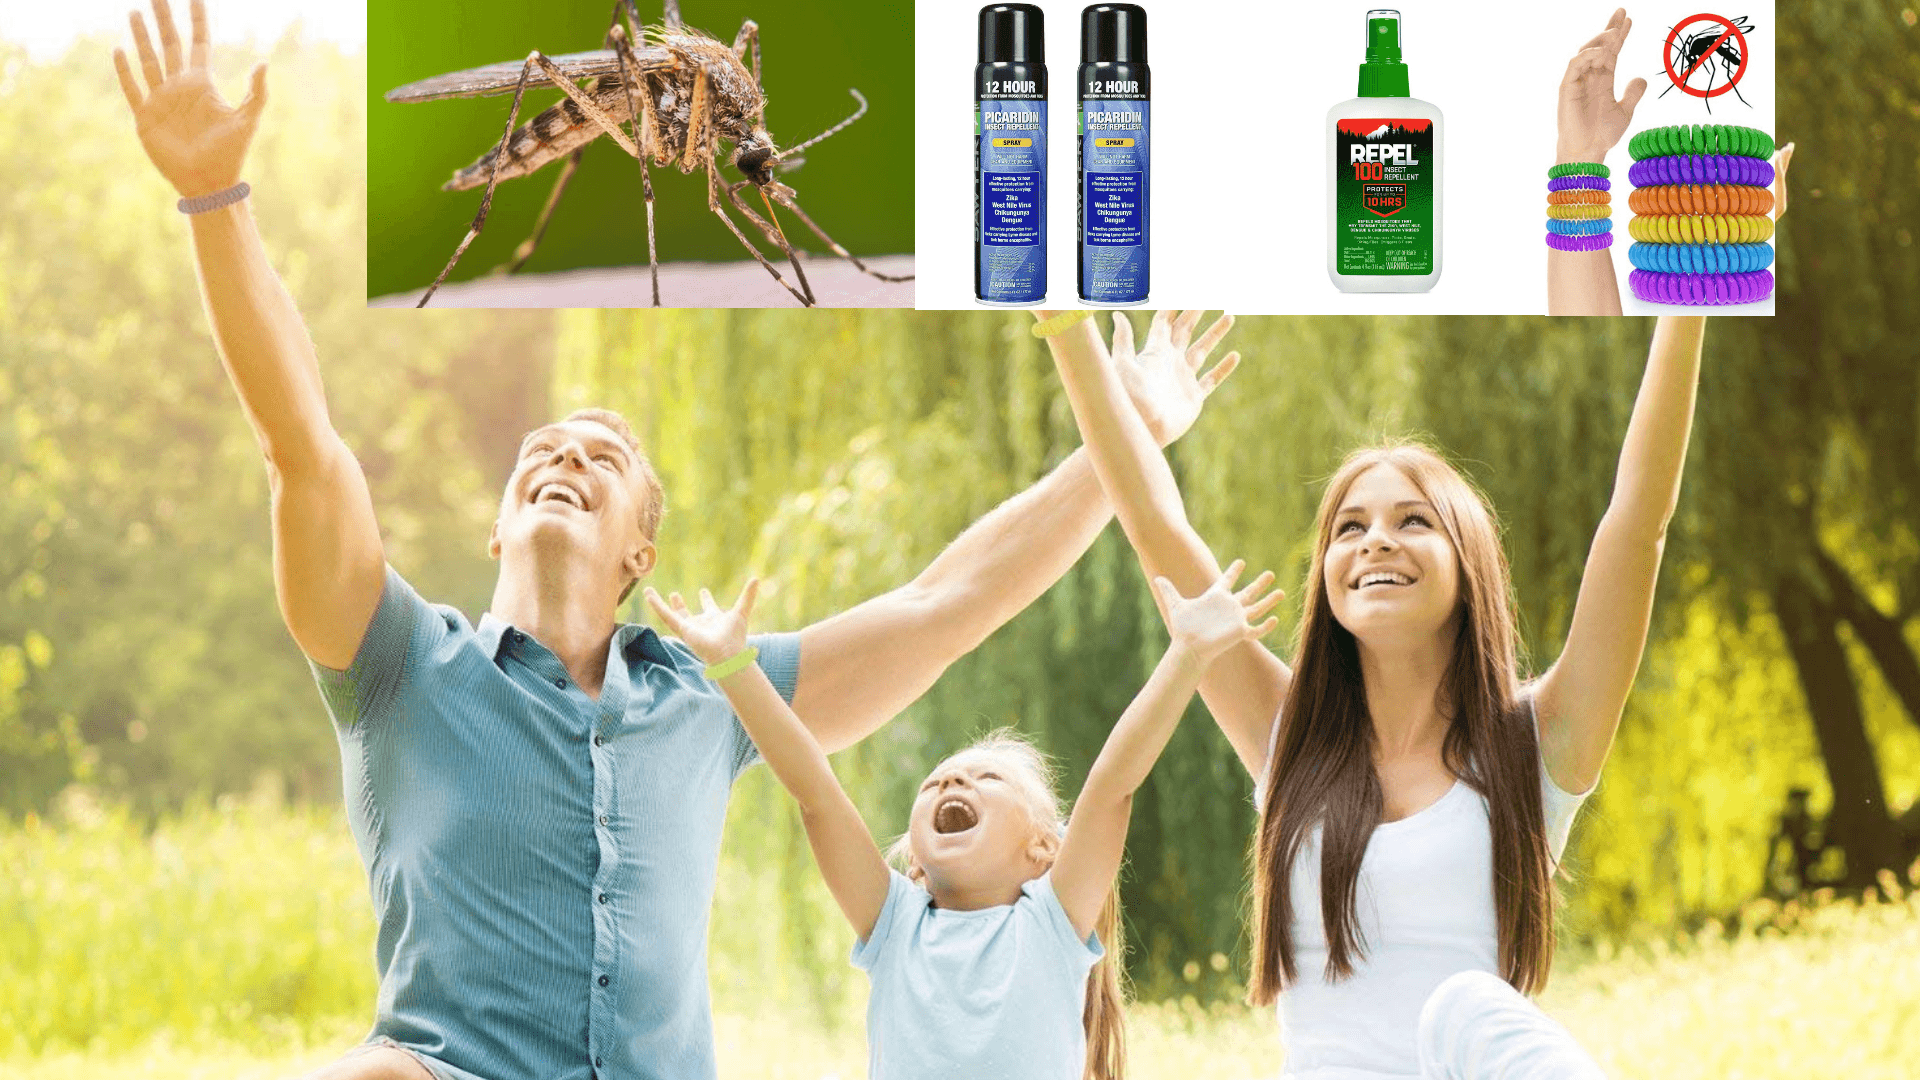 Top 5 Best Mosquito Repellent Reviews